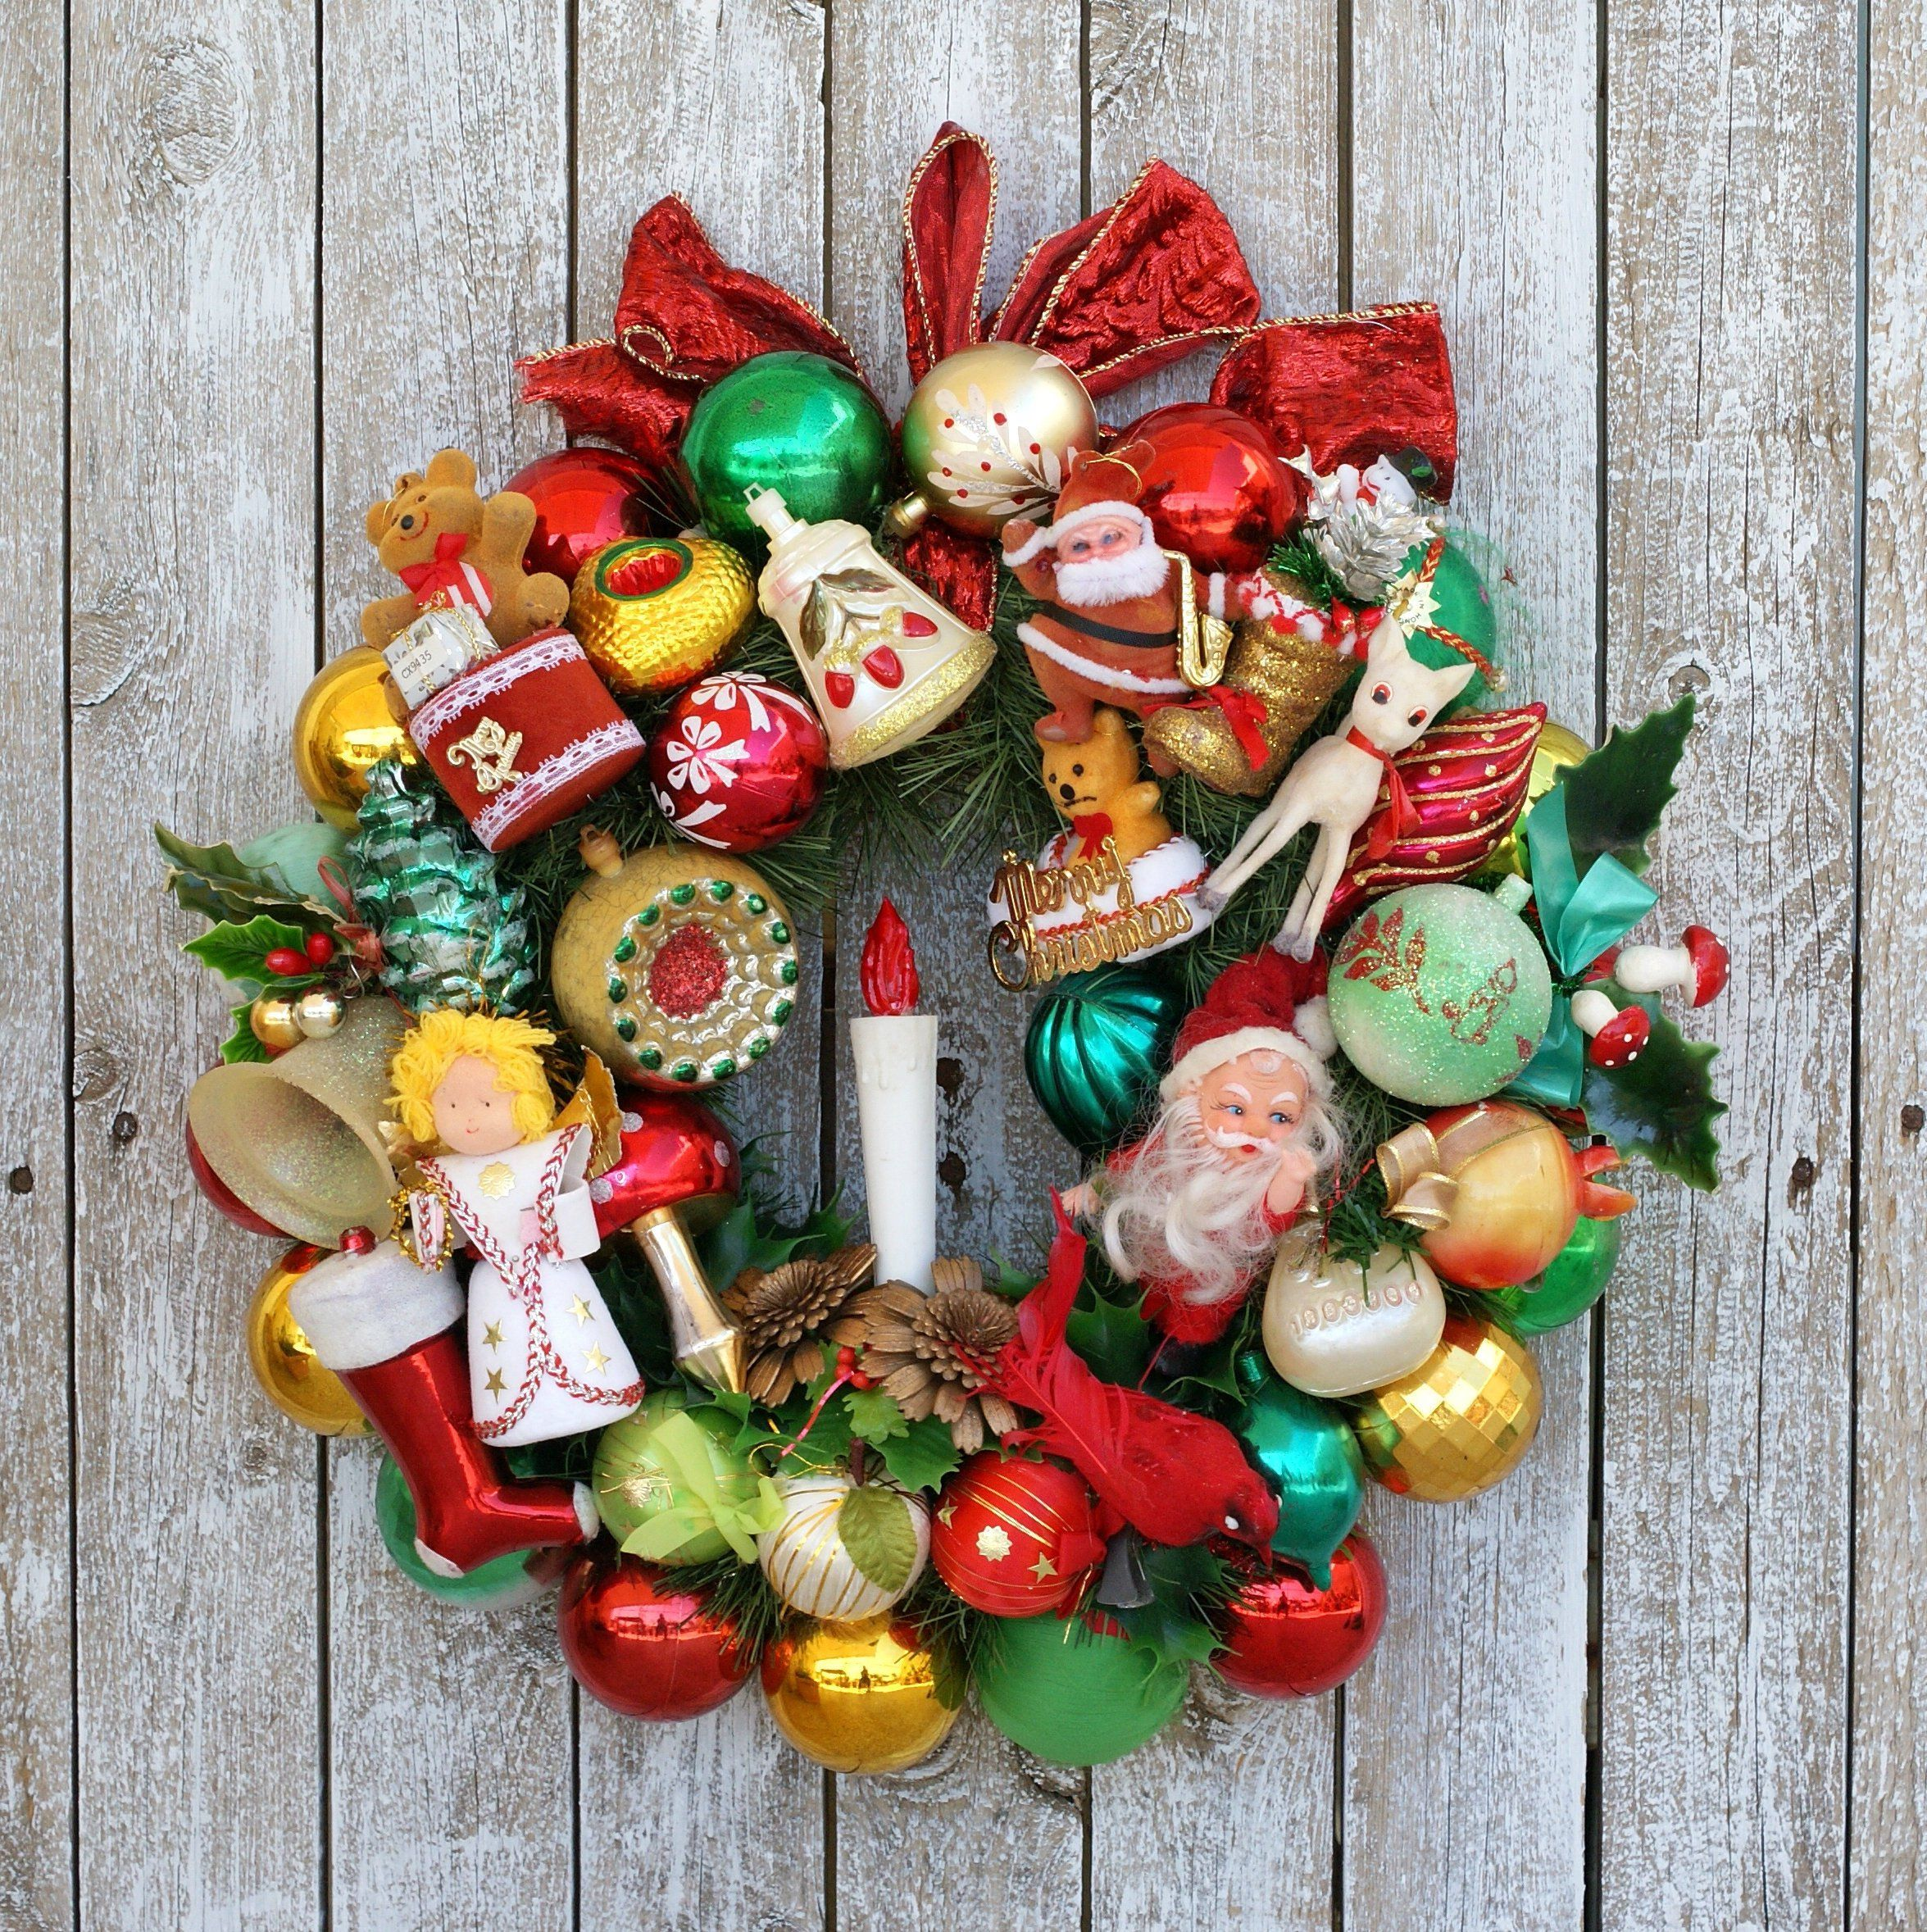 Your Place To Buy And Sell All Things Handmade Unique Christmas Ornaments Christmas Wreaths For Front Door Christmas Wreaths